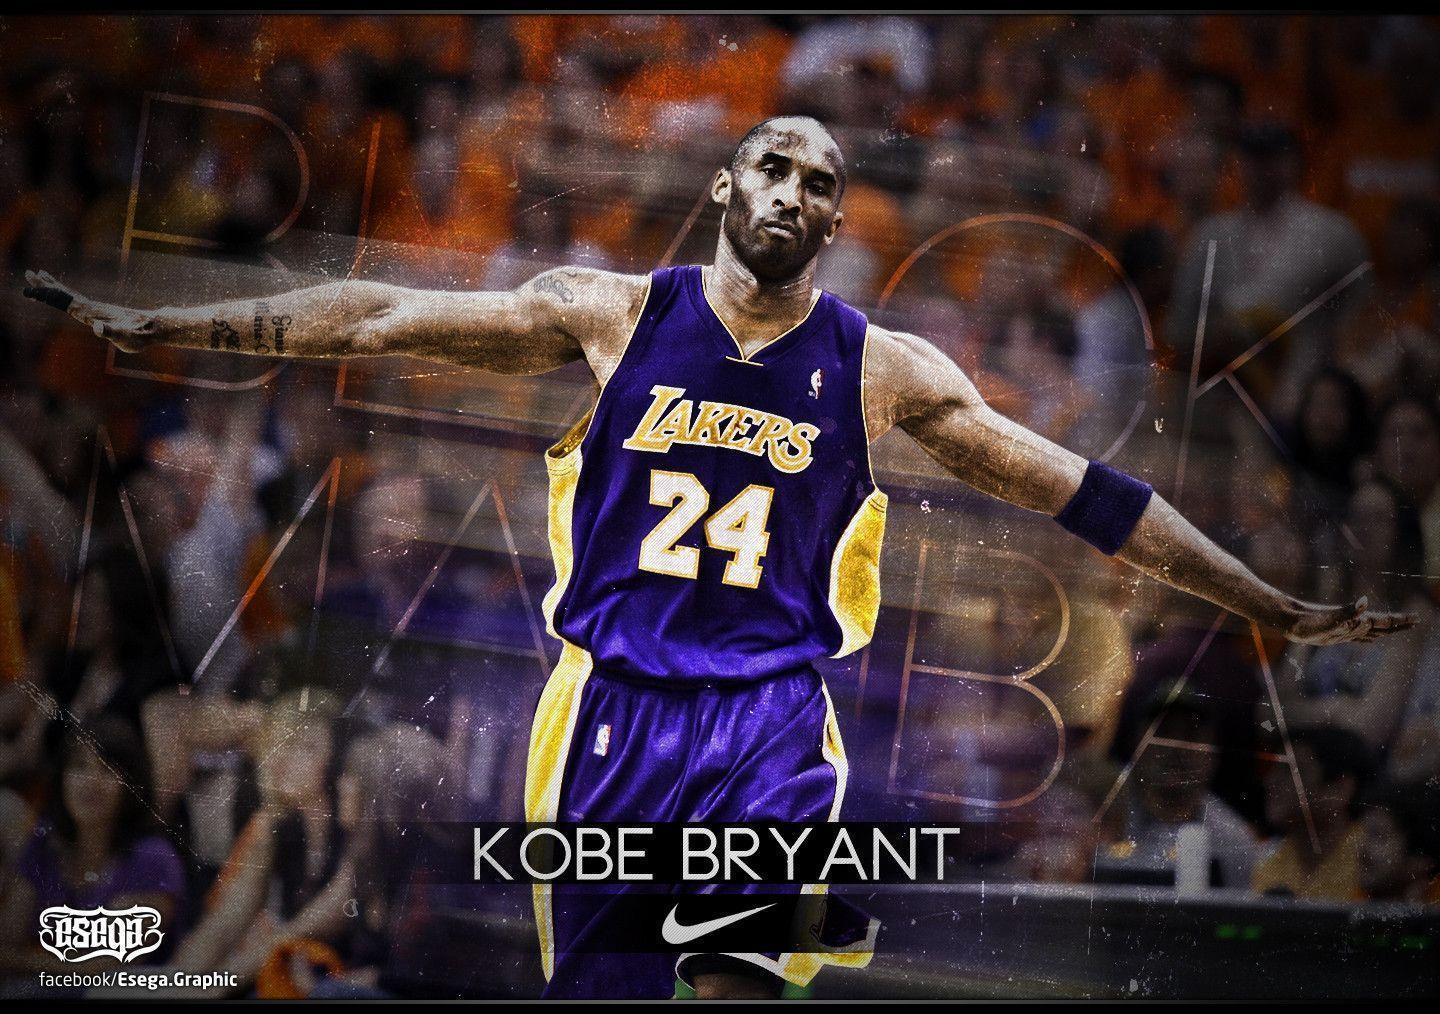 Kobe Bryant HD Wallpapers & Latest New Backgrounds